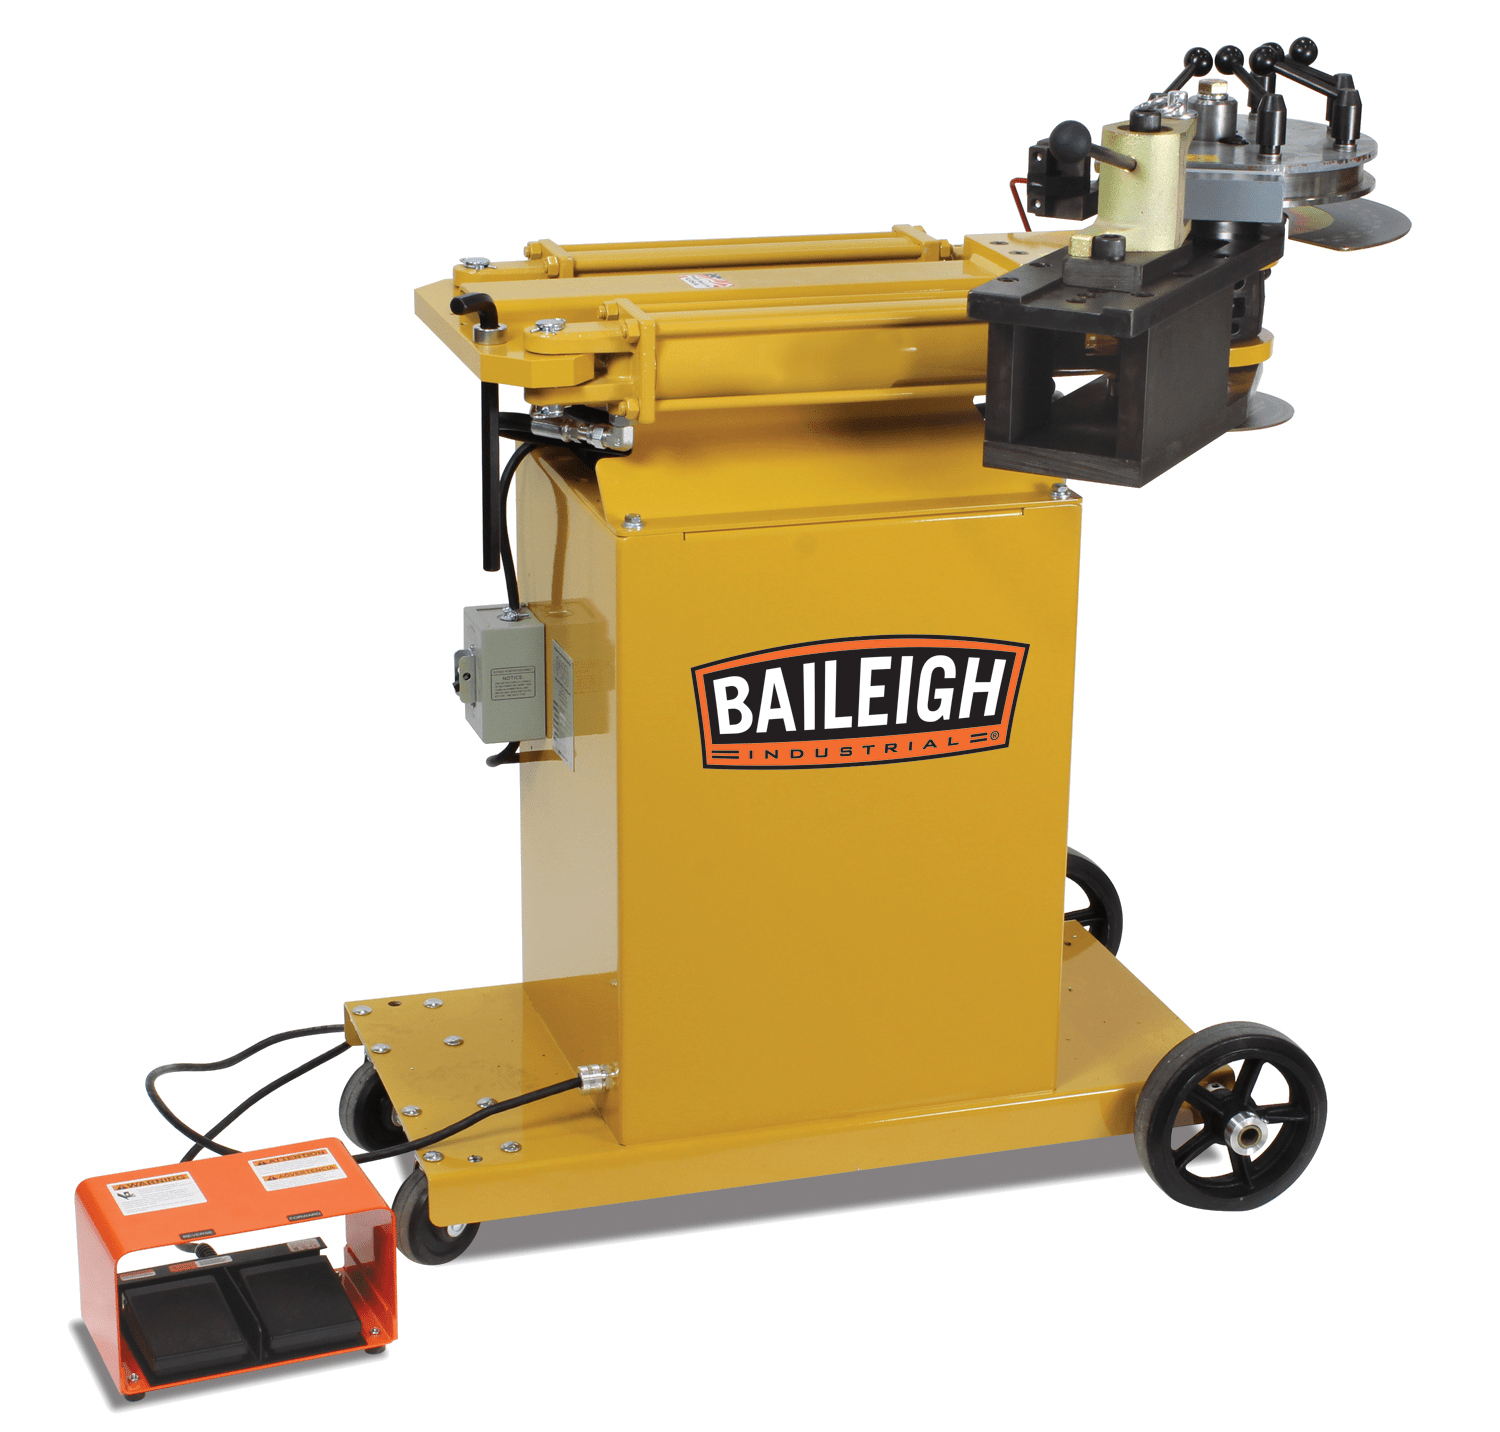 Baileigh Woodworking Tools